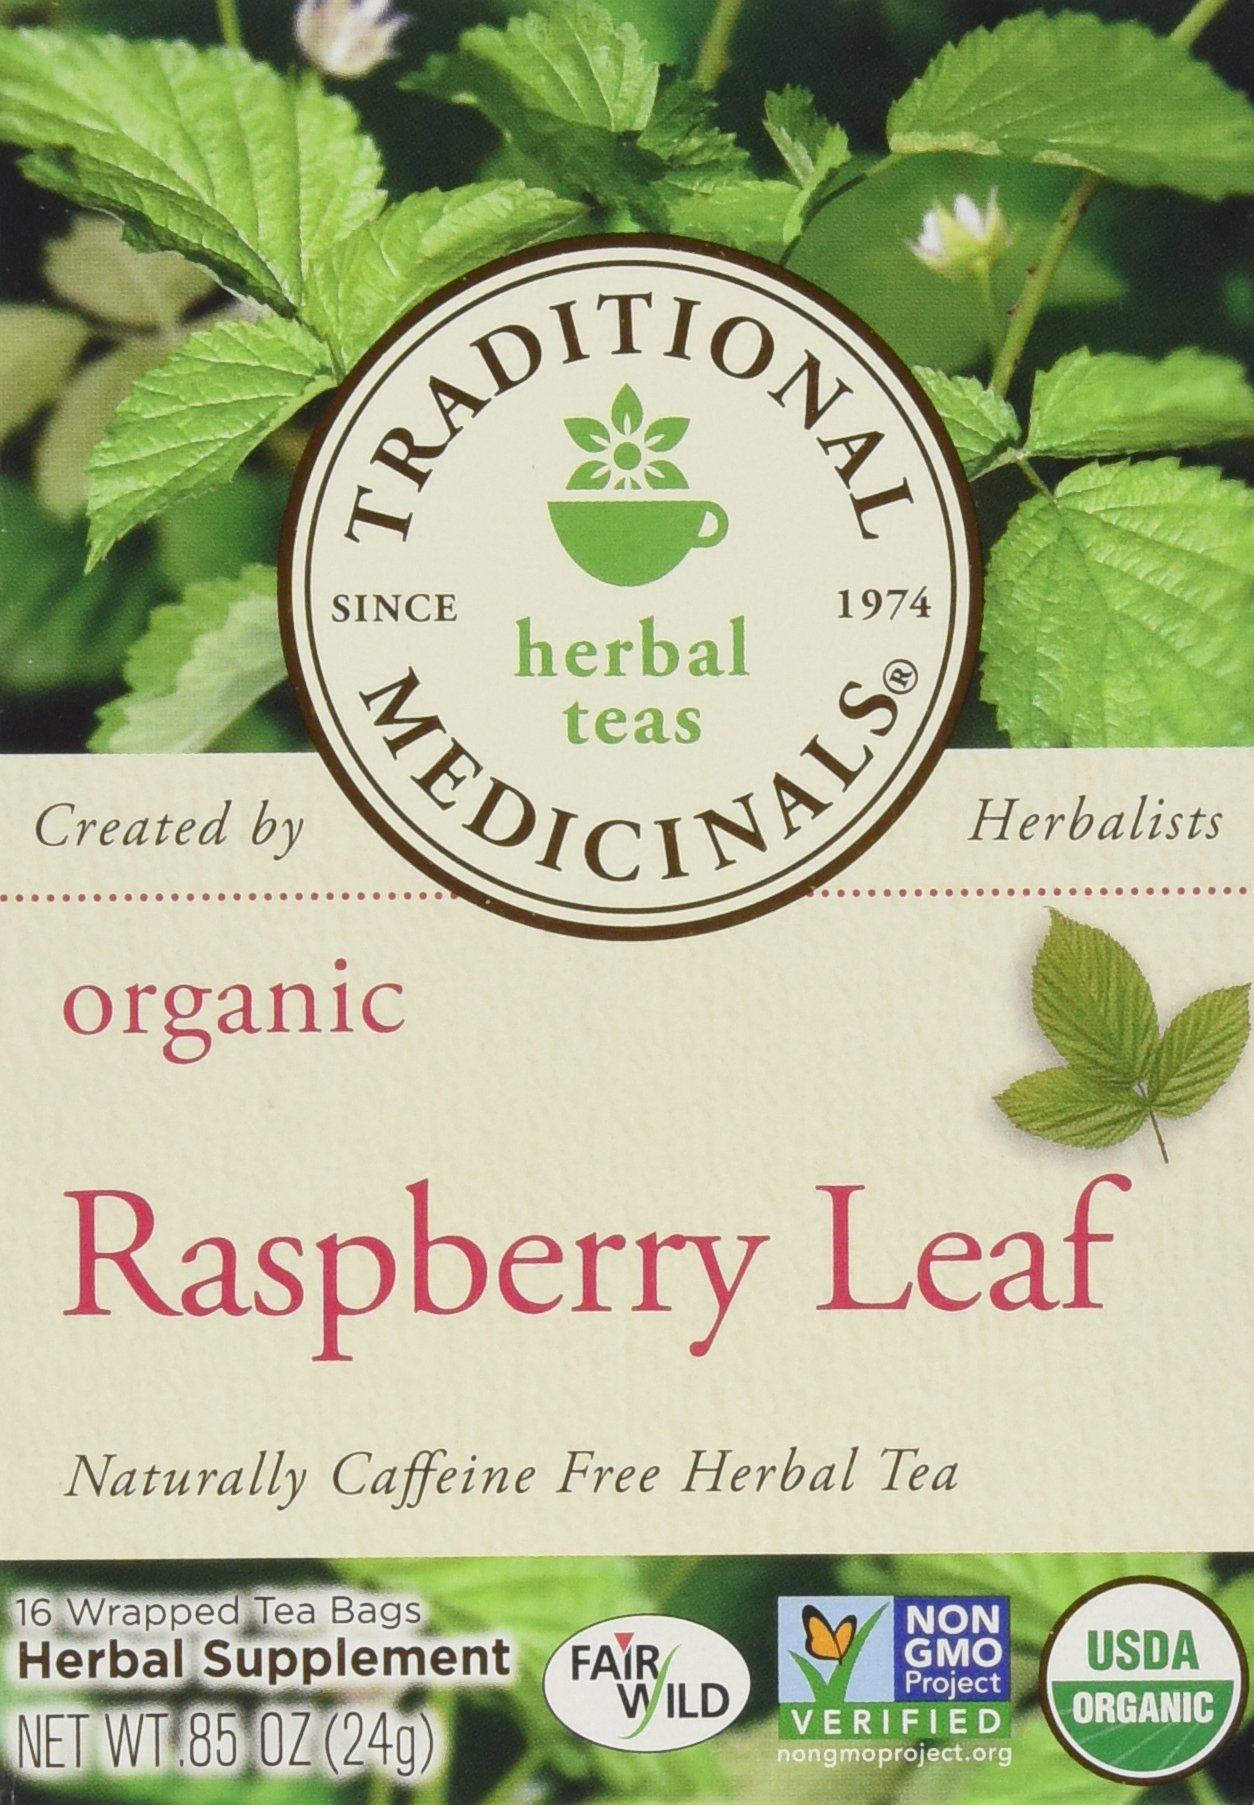 Traditional Medicinals Organic Raspberry Leaf Herbal Tea Caffeine Free 16 Bags Pack of 3 by Traditional Medicinals